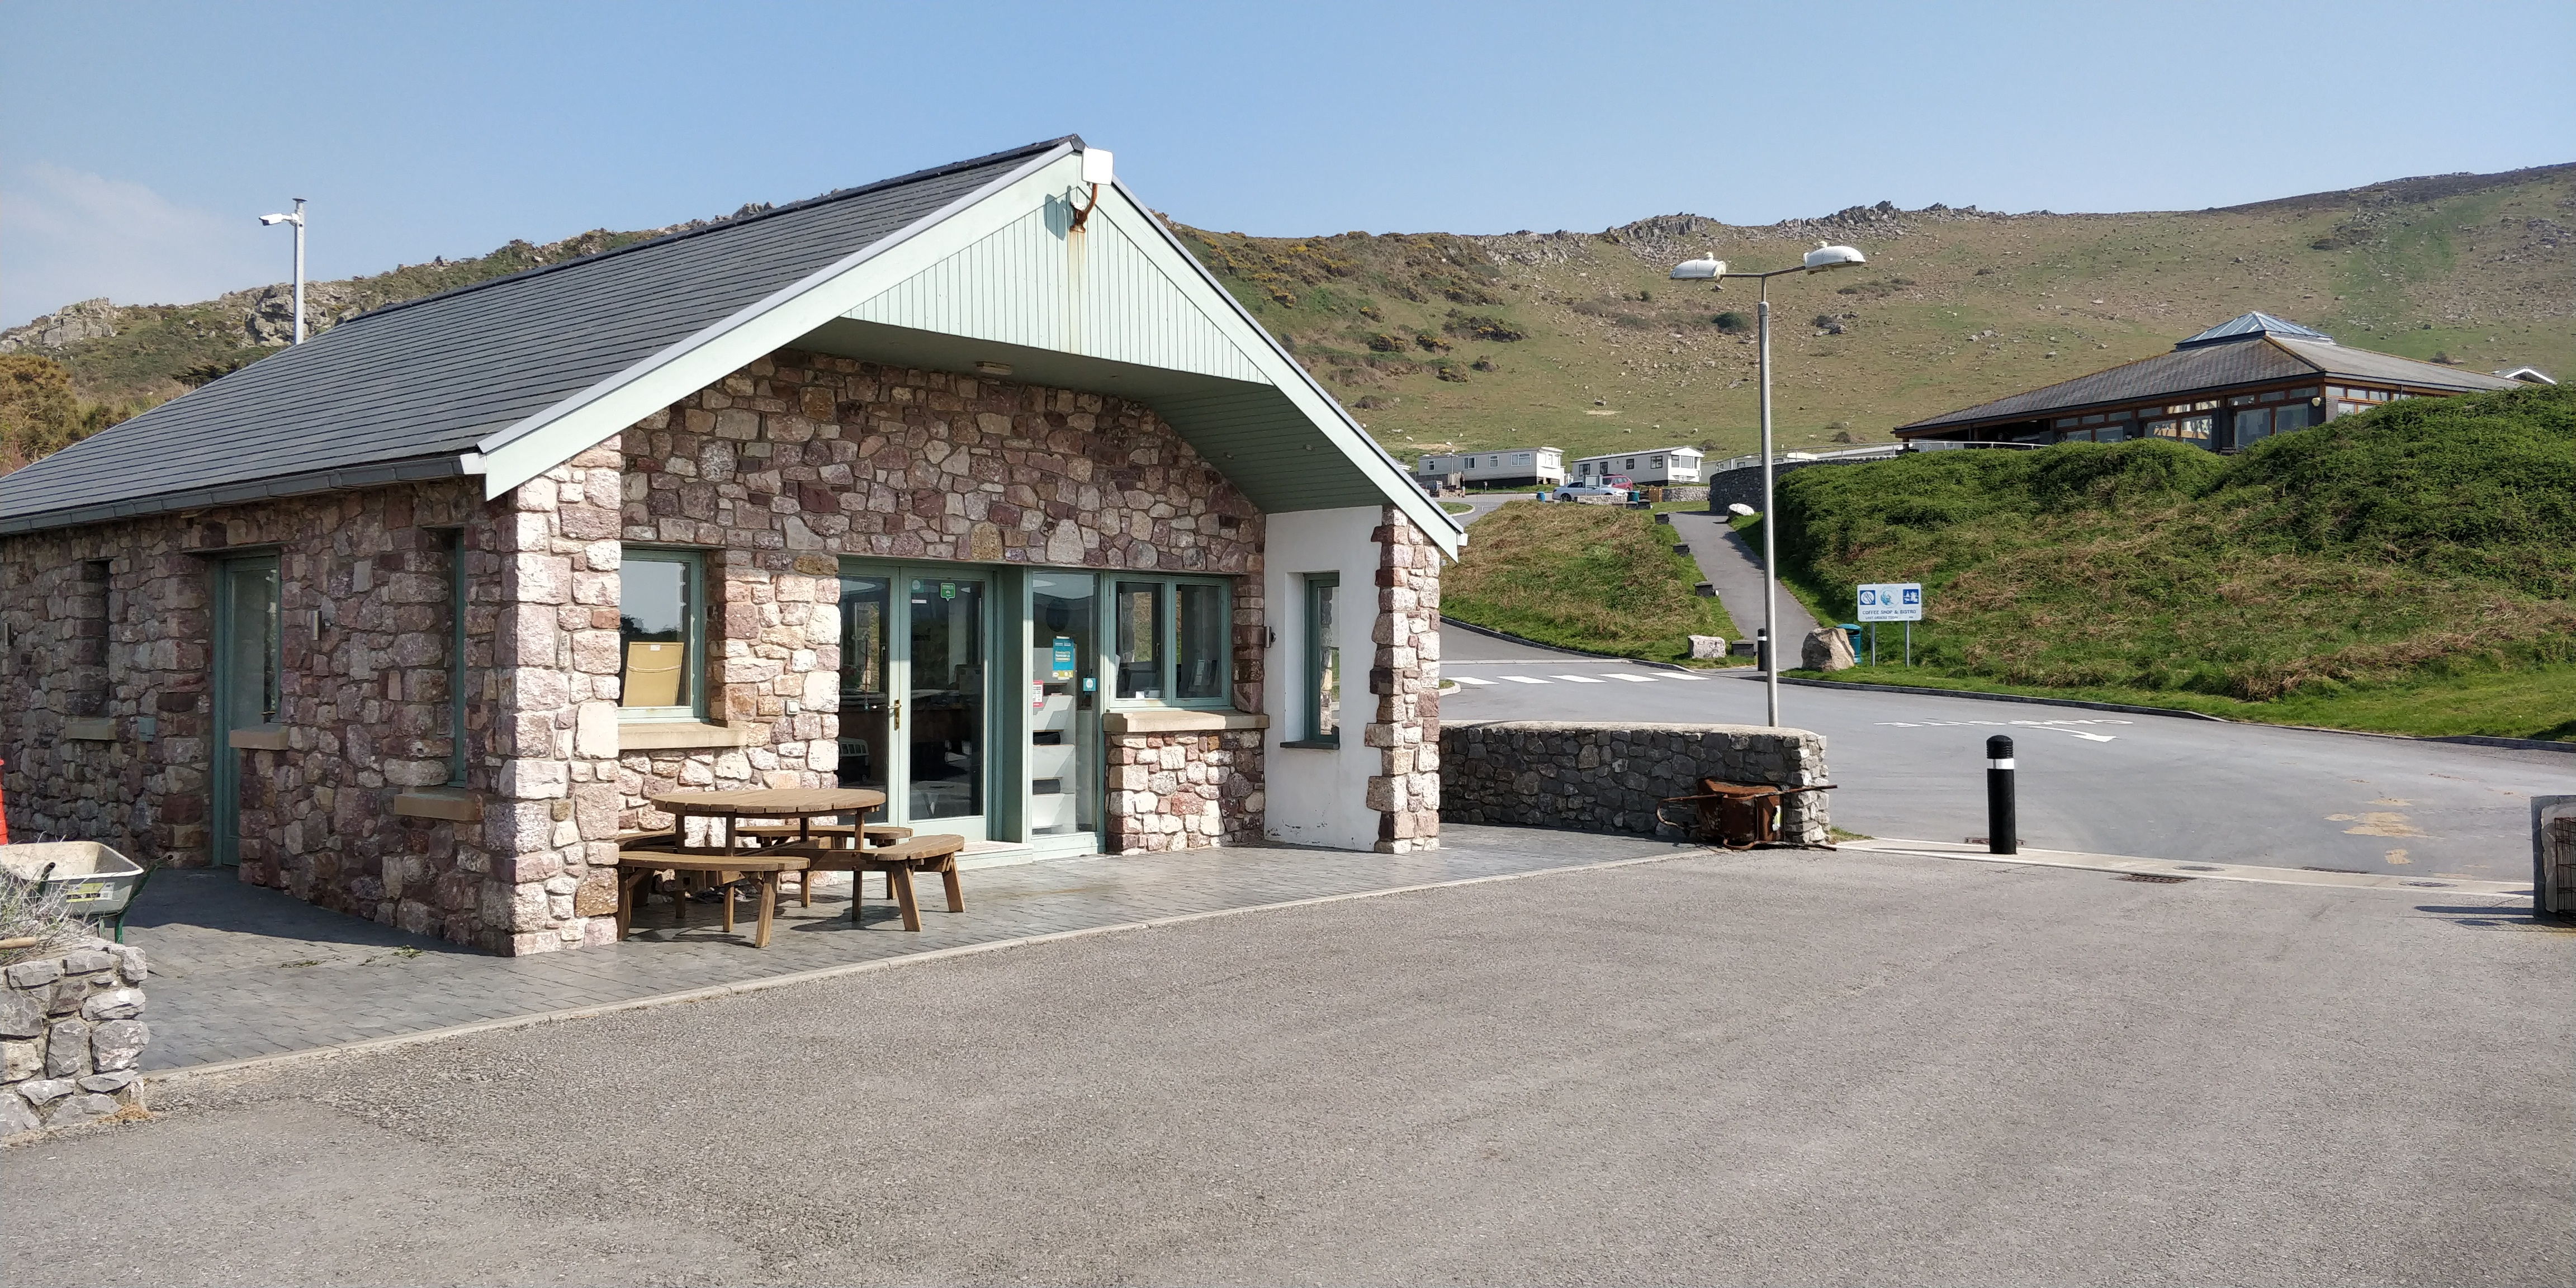 Campsite booking office